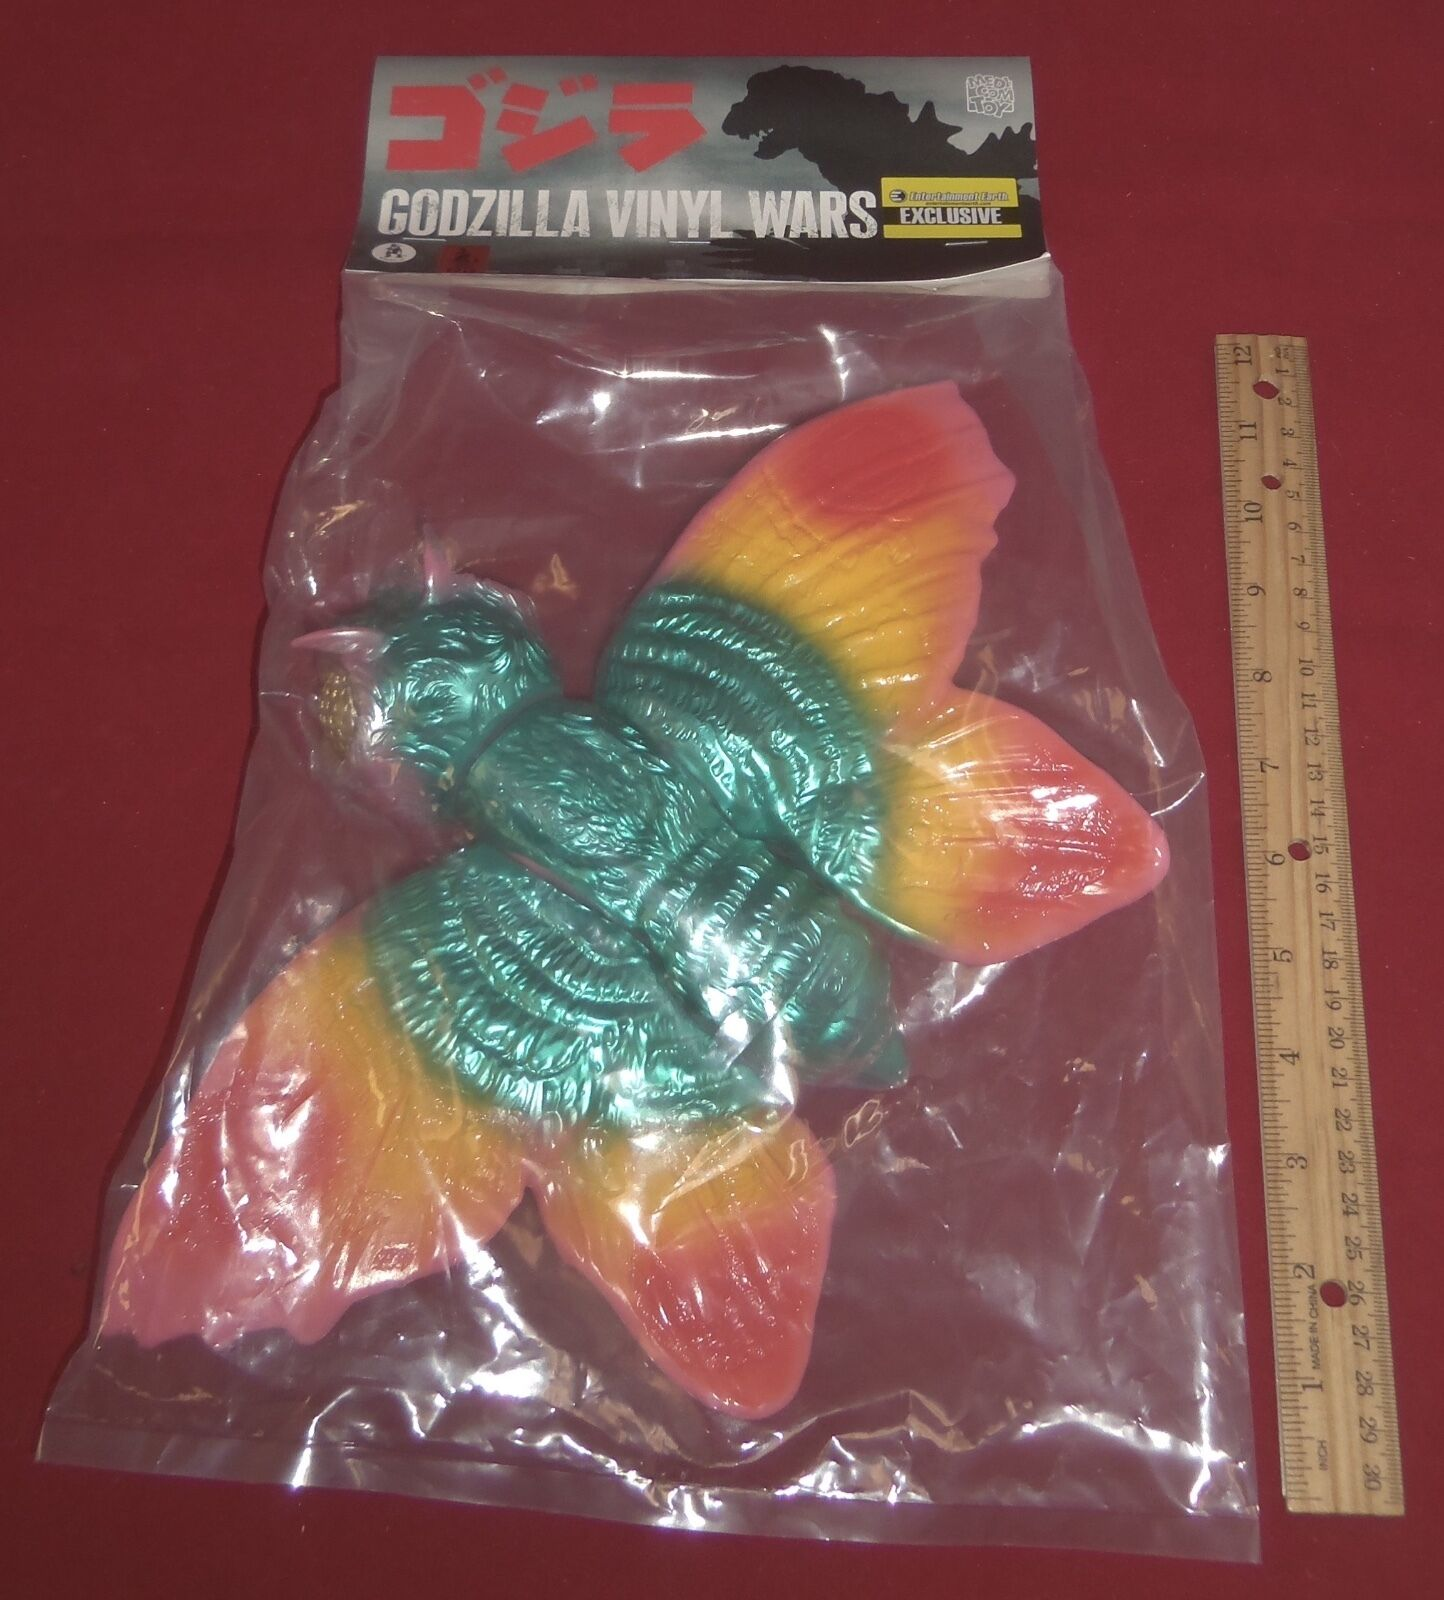 Godzilla Vinyl Wars Bullmark Mothra Sofubi Vinyl Only 1 of 100 Made EE Exclusive